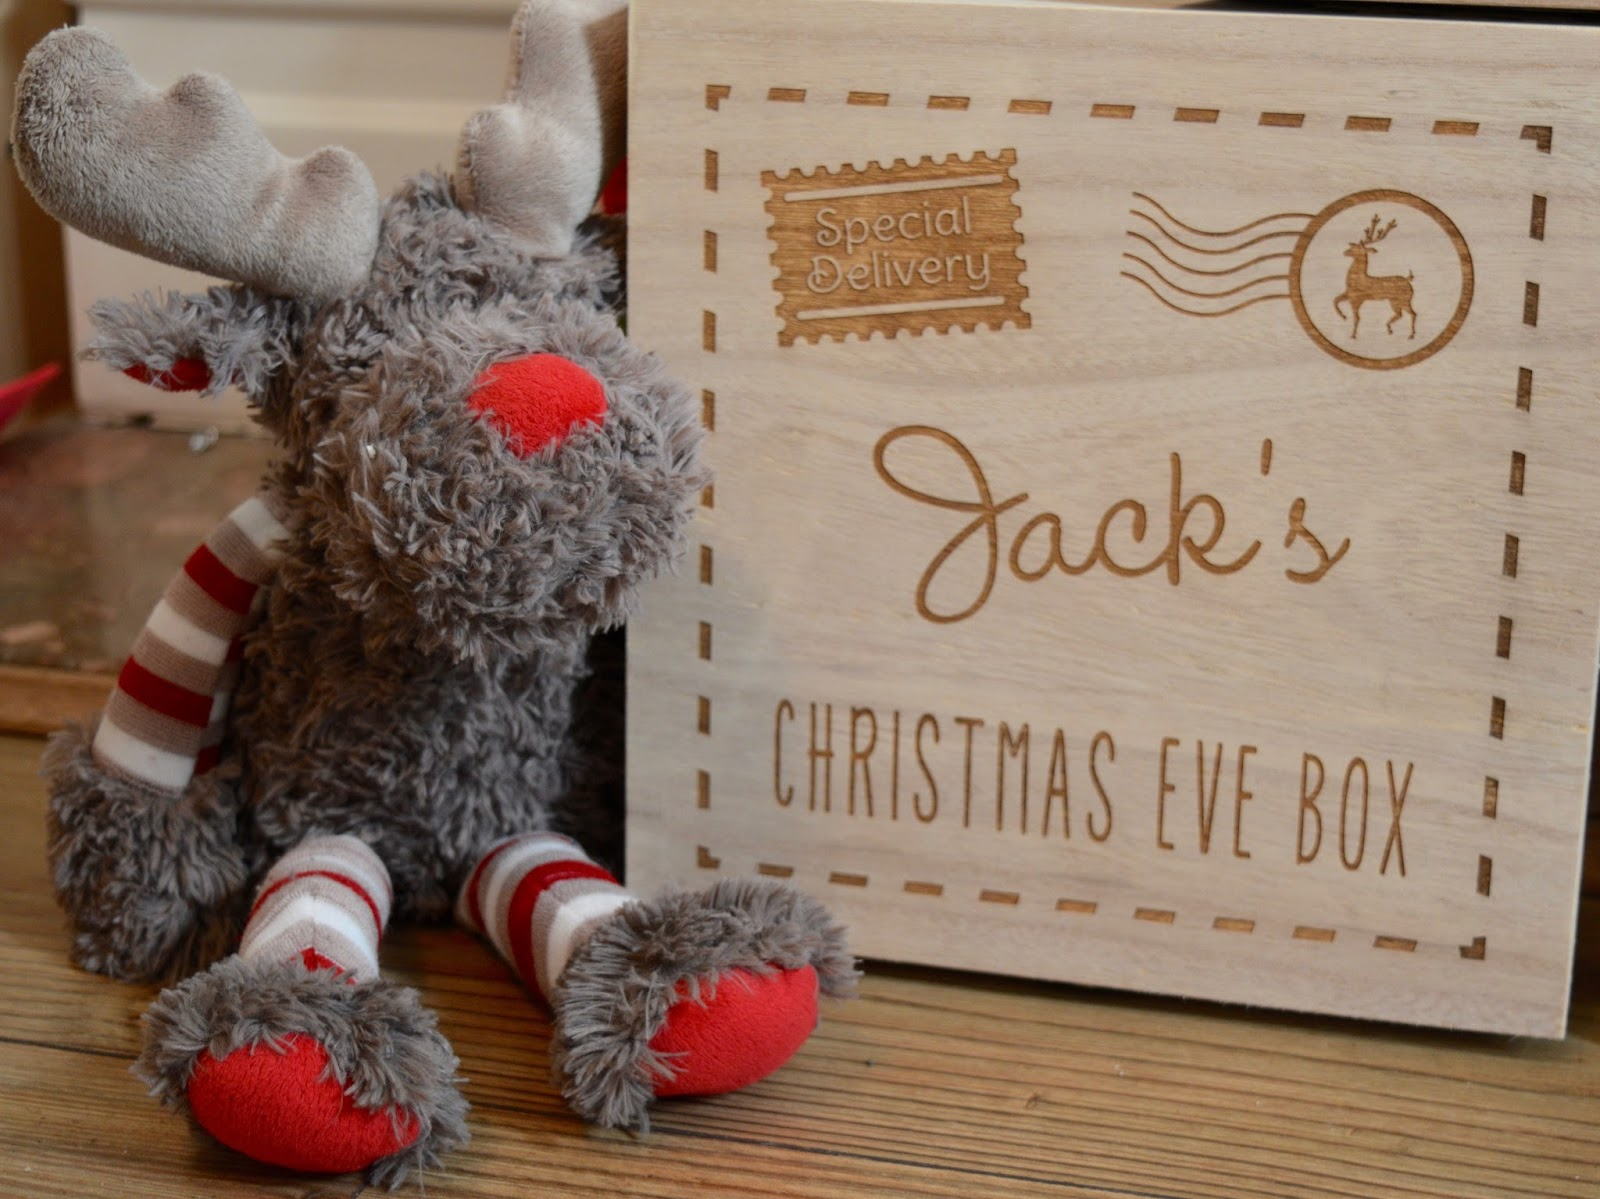 How to Create a Magical Personalised Christmas Eve Box with GettingPersonal.co.uk including ideas for what to put inside.